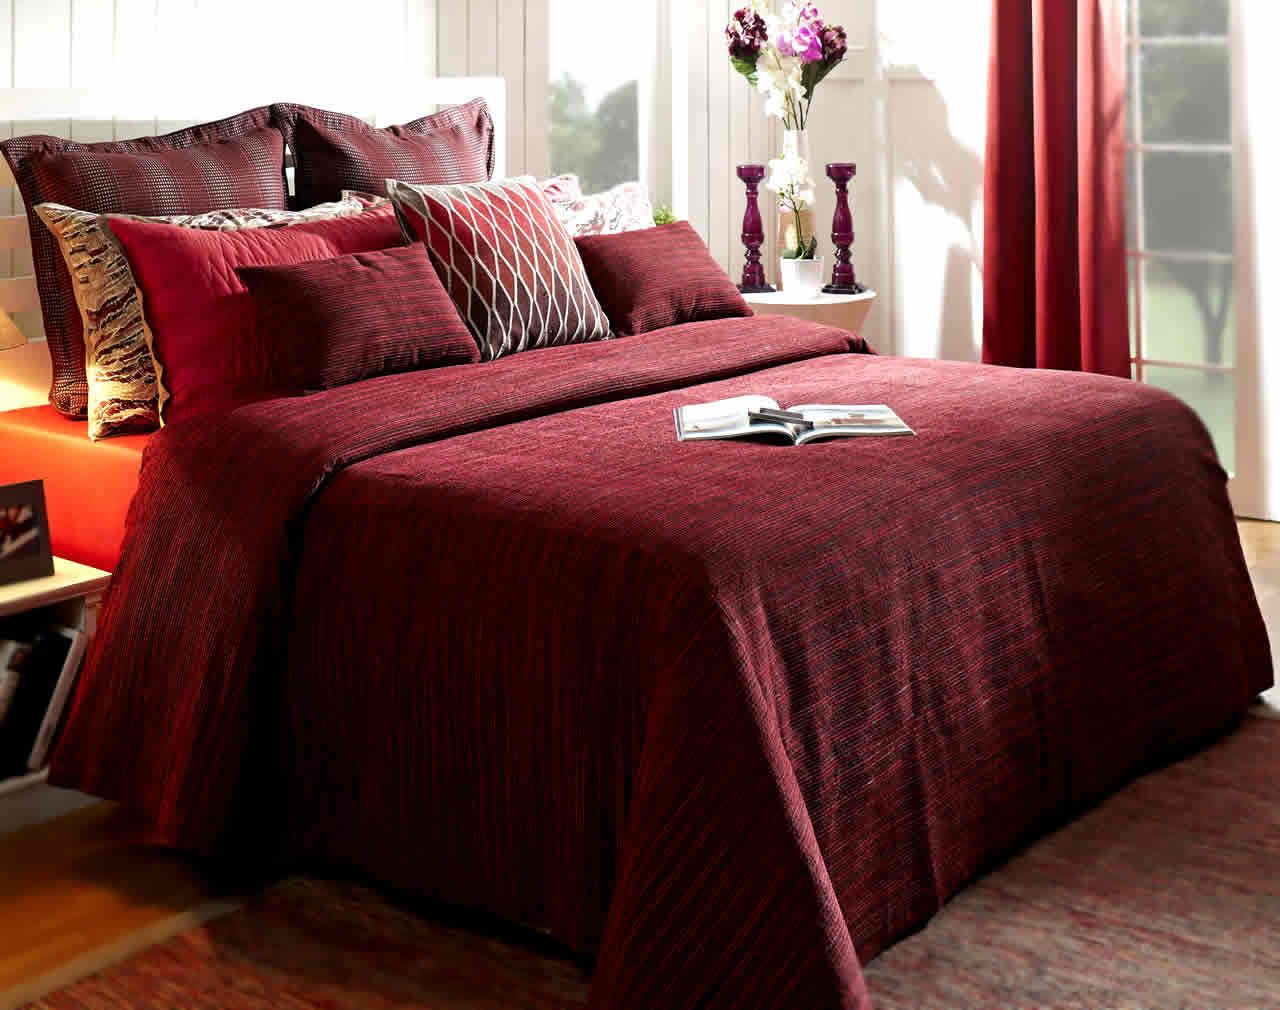 Lineageruby pink by maspar a bedroom is the best place for rest